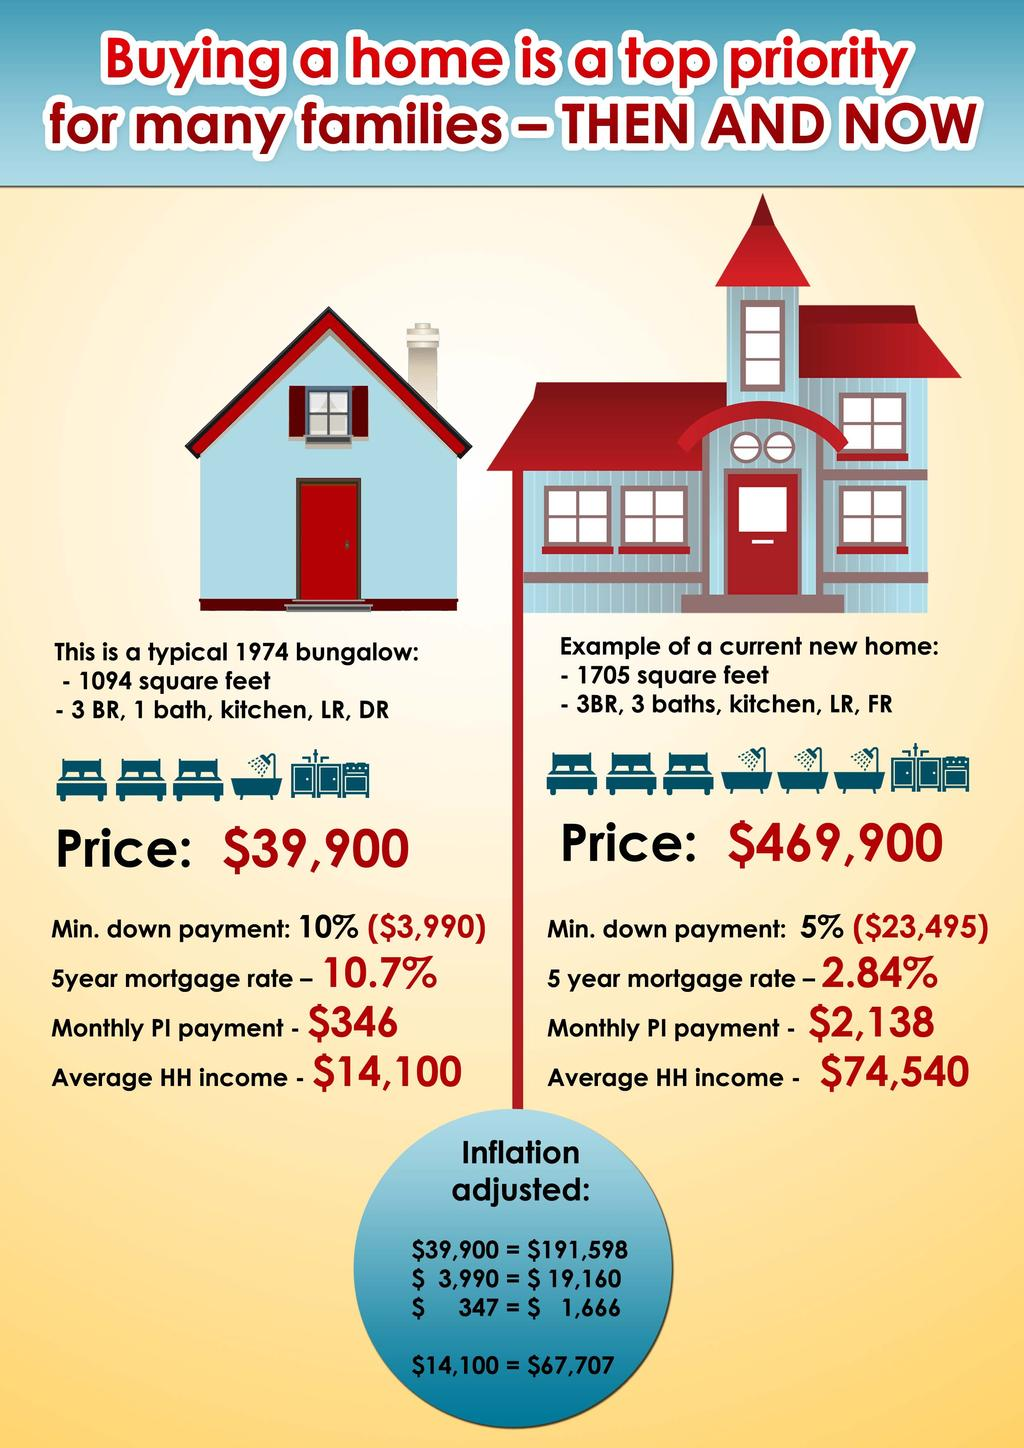 Buying a home 1974 vs. 2014